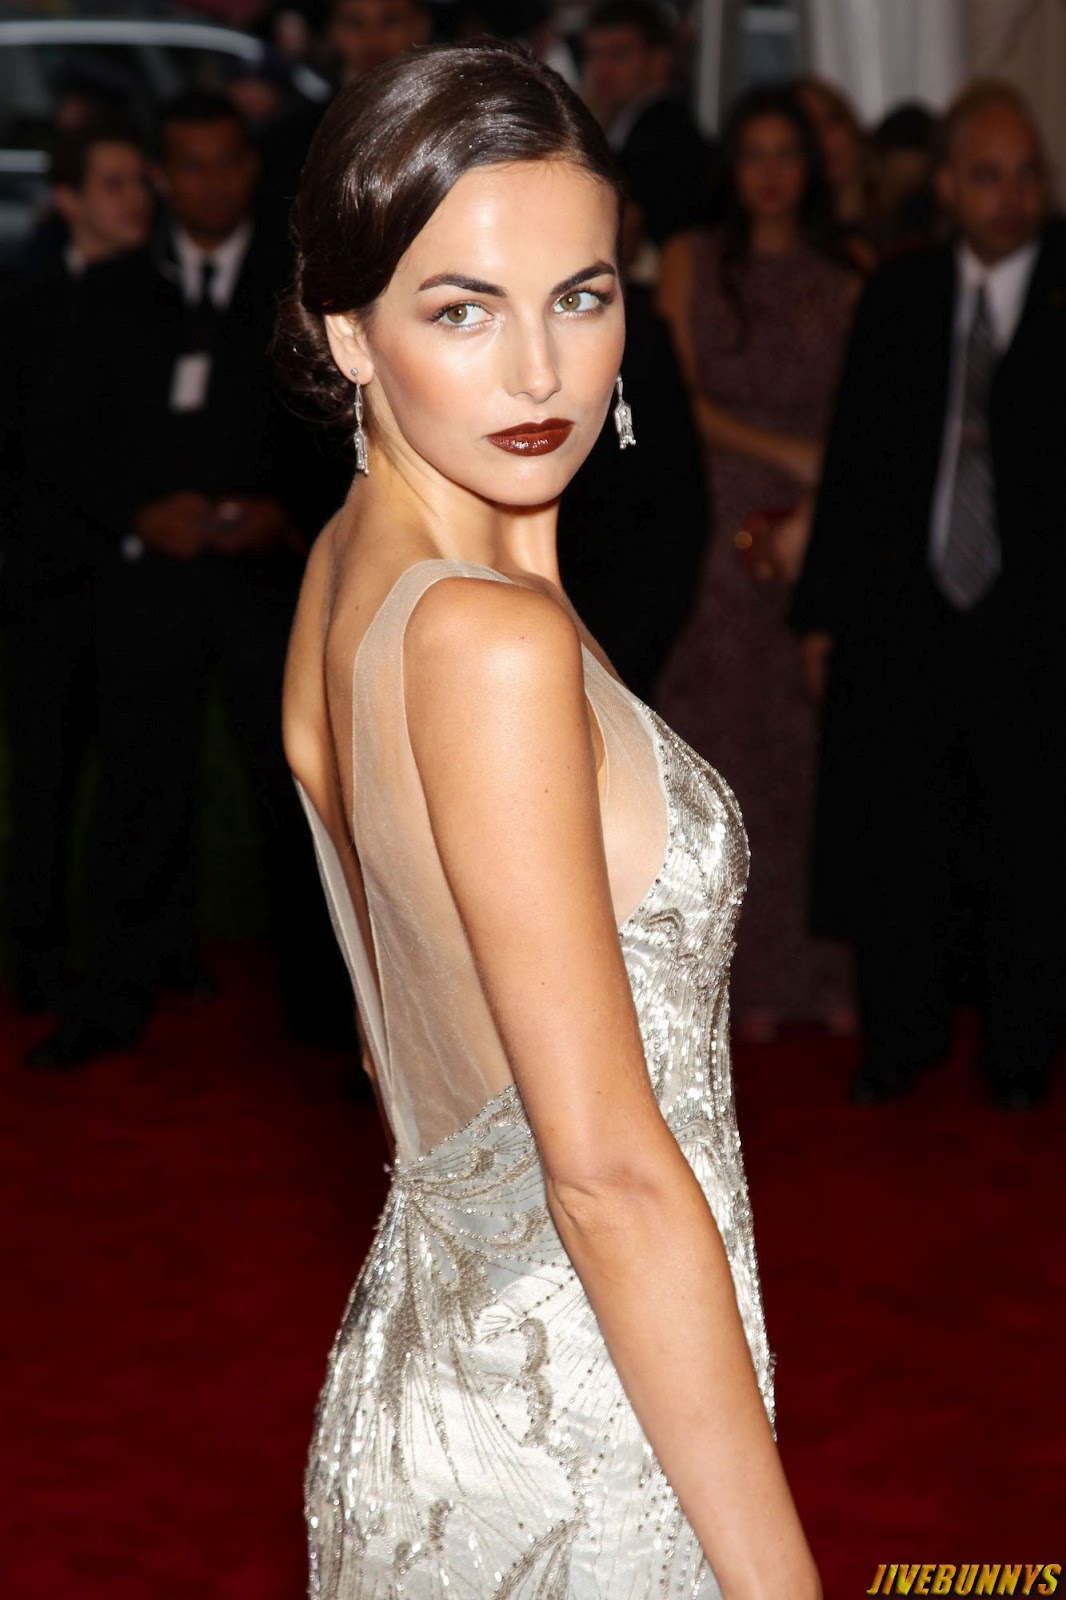 Camilla Belle Hot Photos and Image Gallery 3